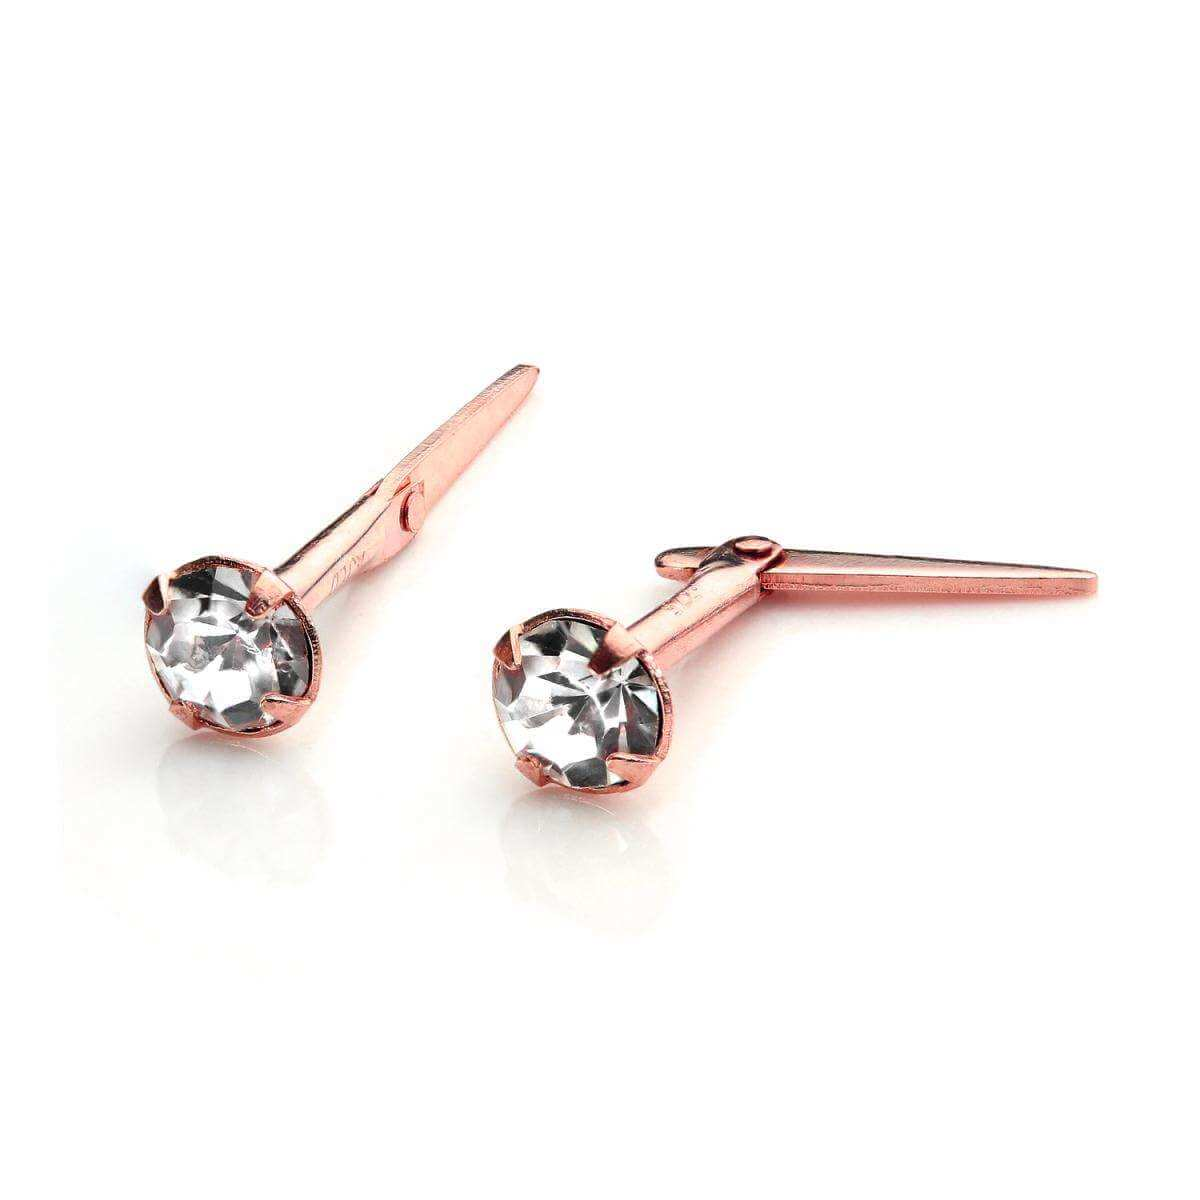 9ct Rose Gold Andralok Stud Earrings with 3mm Clear CZ Crystal